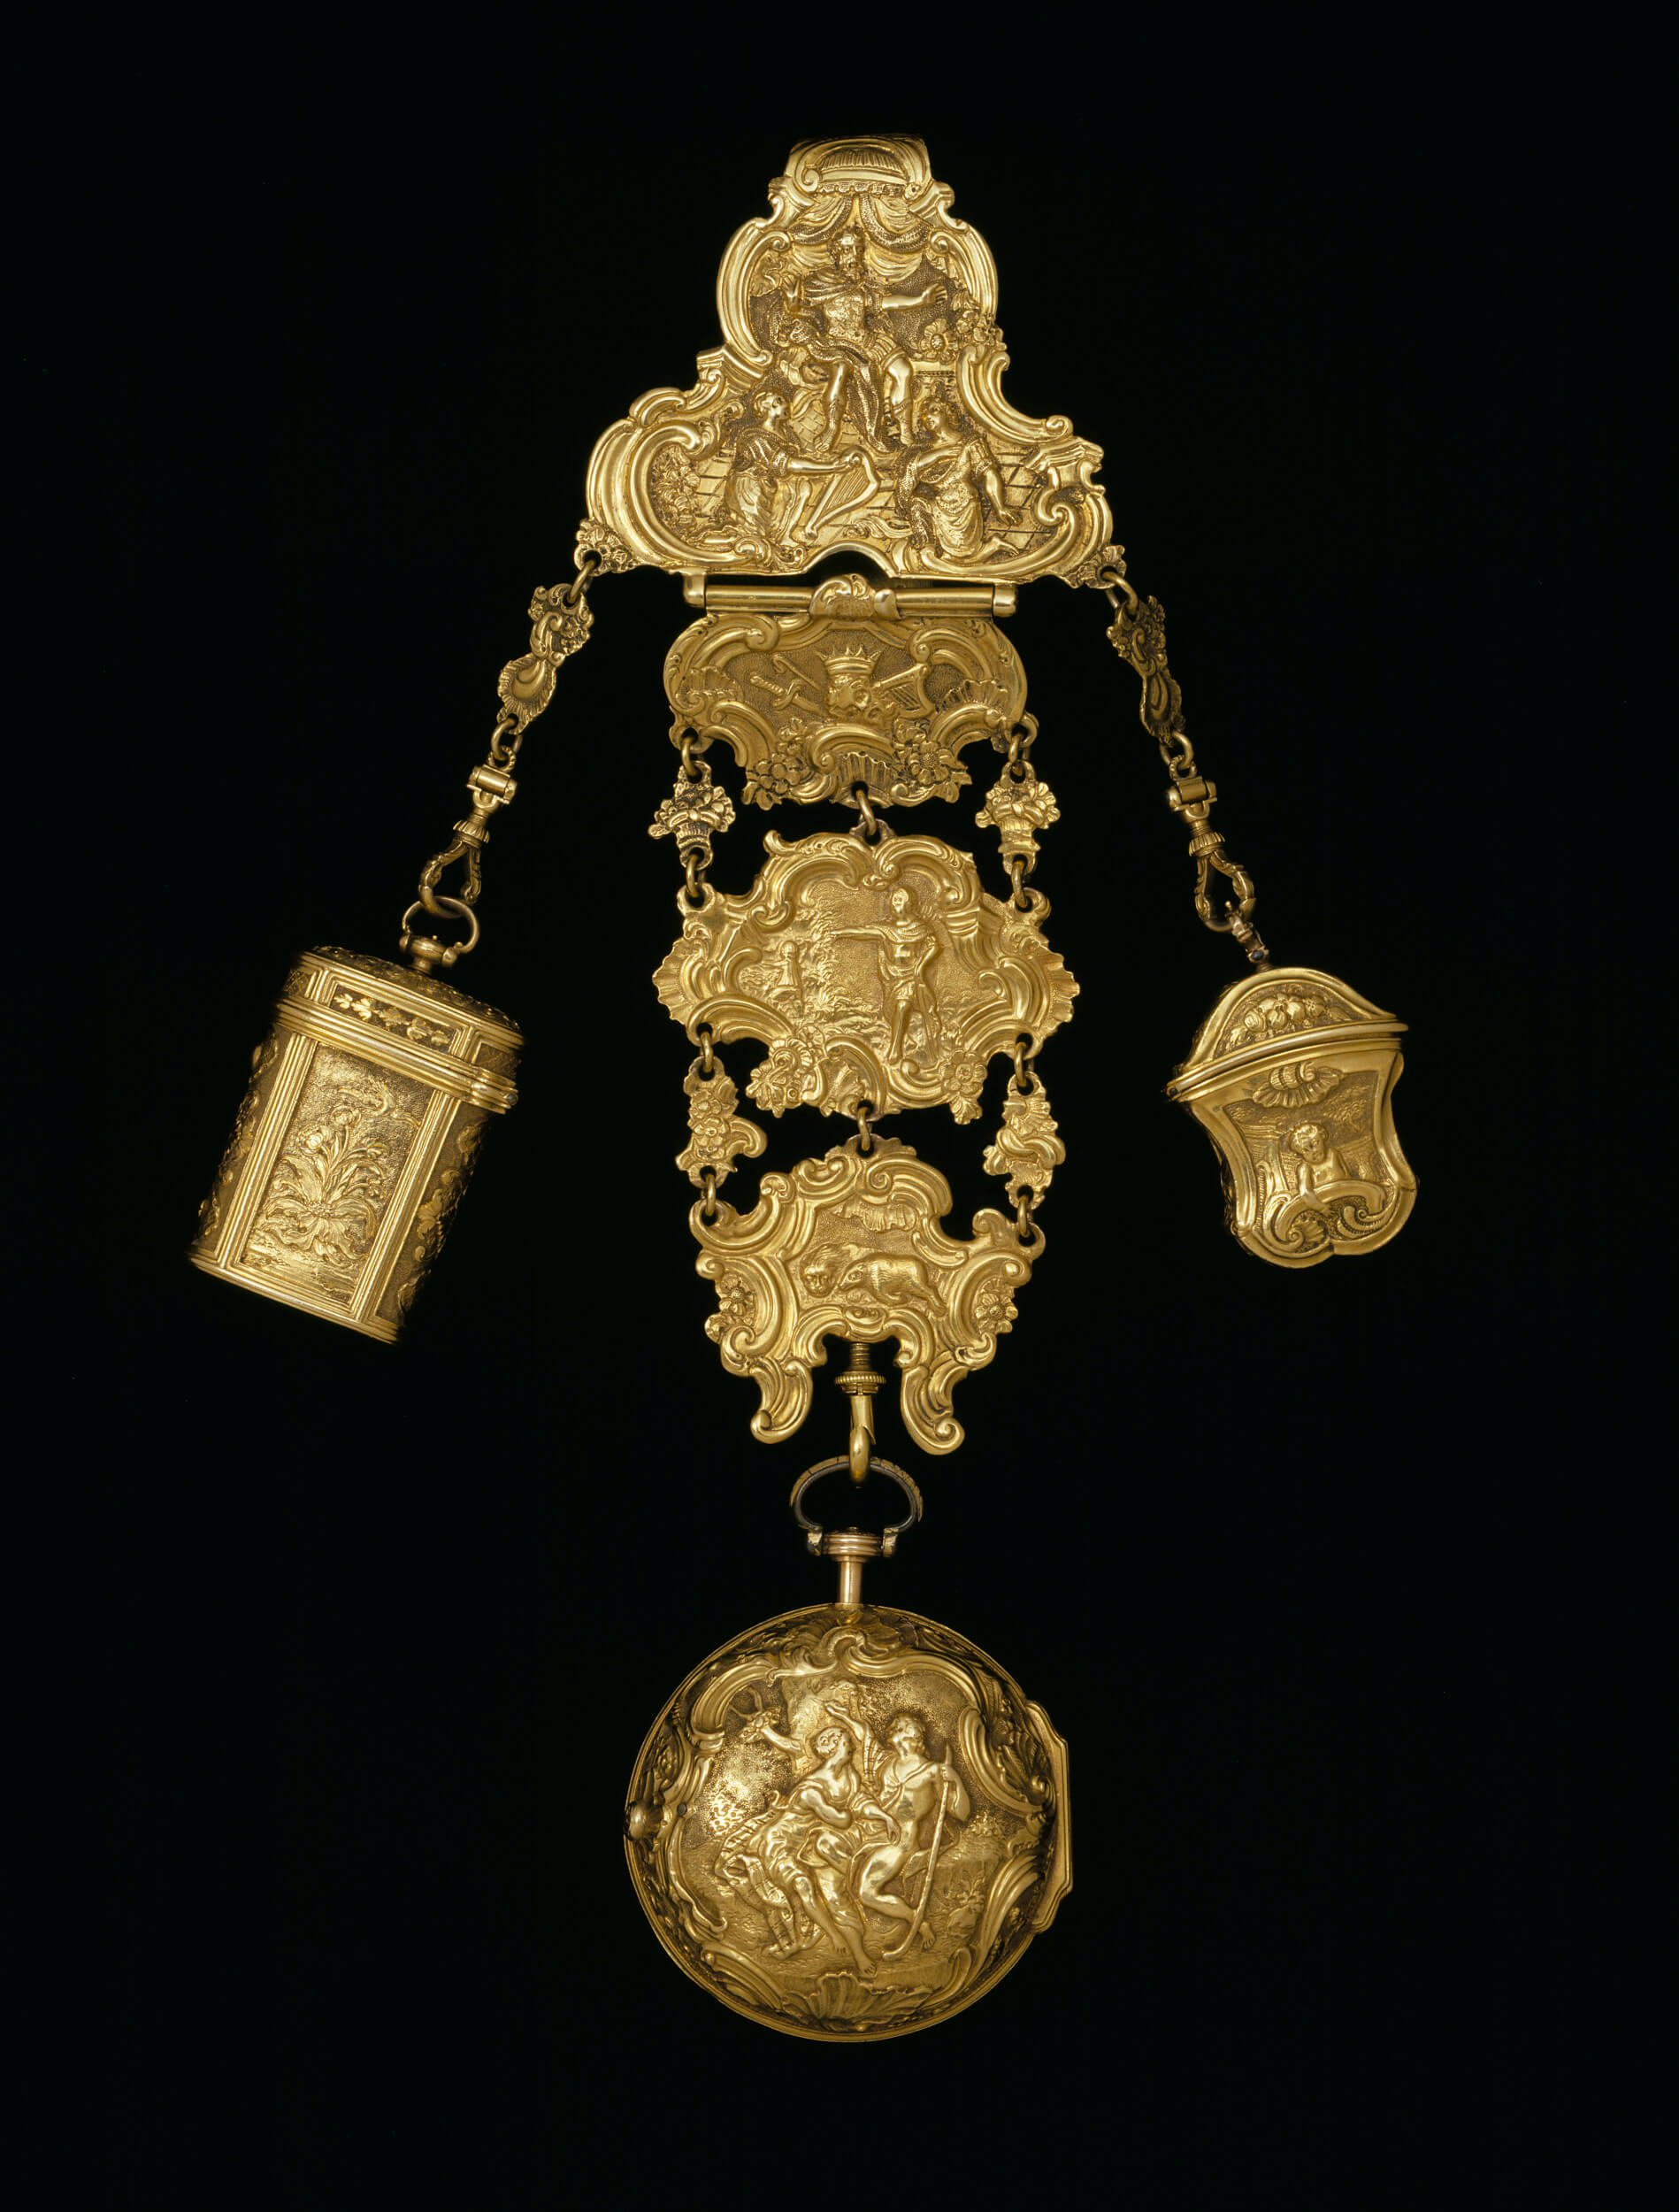 Georgian chatelaine